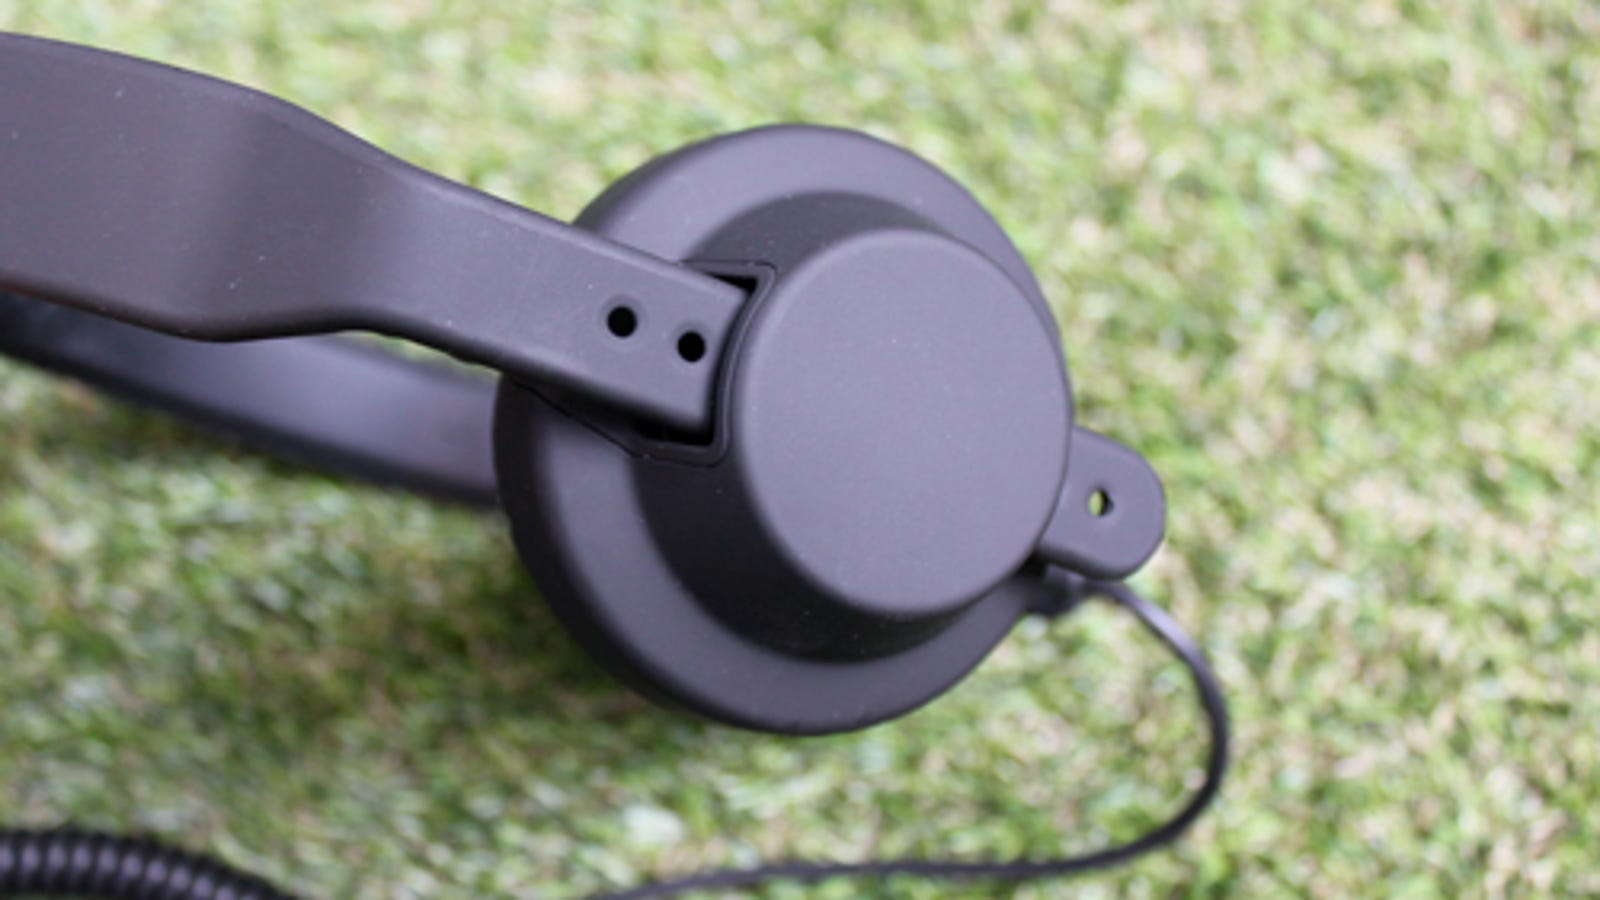 Aiaiai TMA-1 Headphones Lightning Review: High On Bass, High On Style